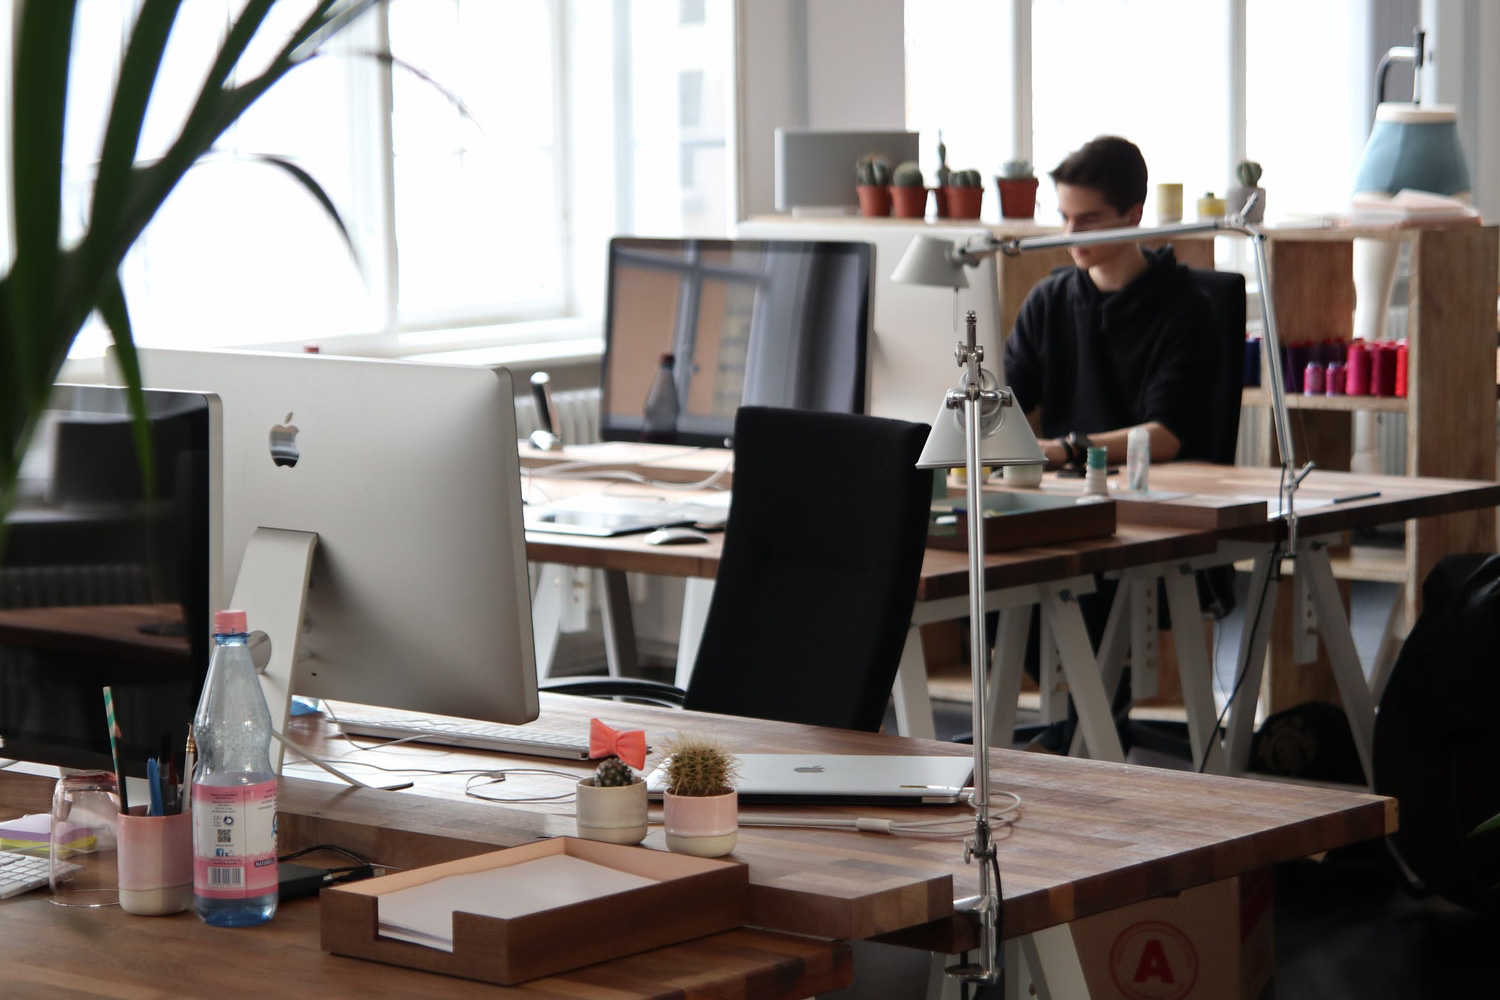 Safe and Socially Distanced Workplace